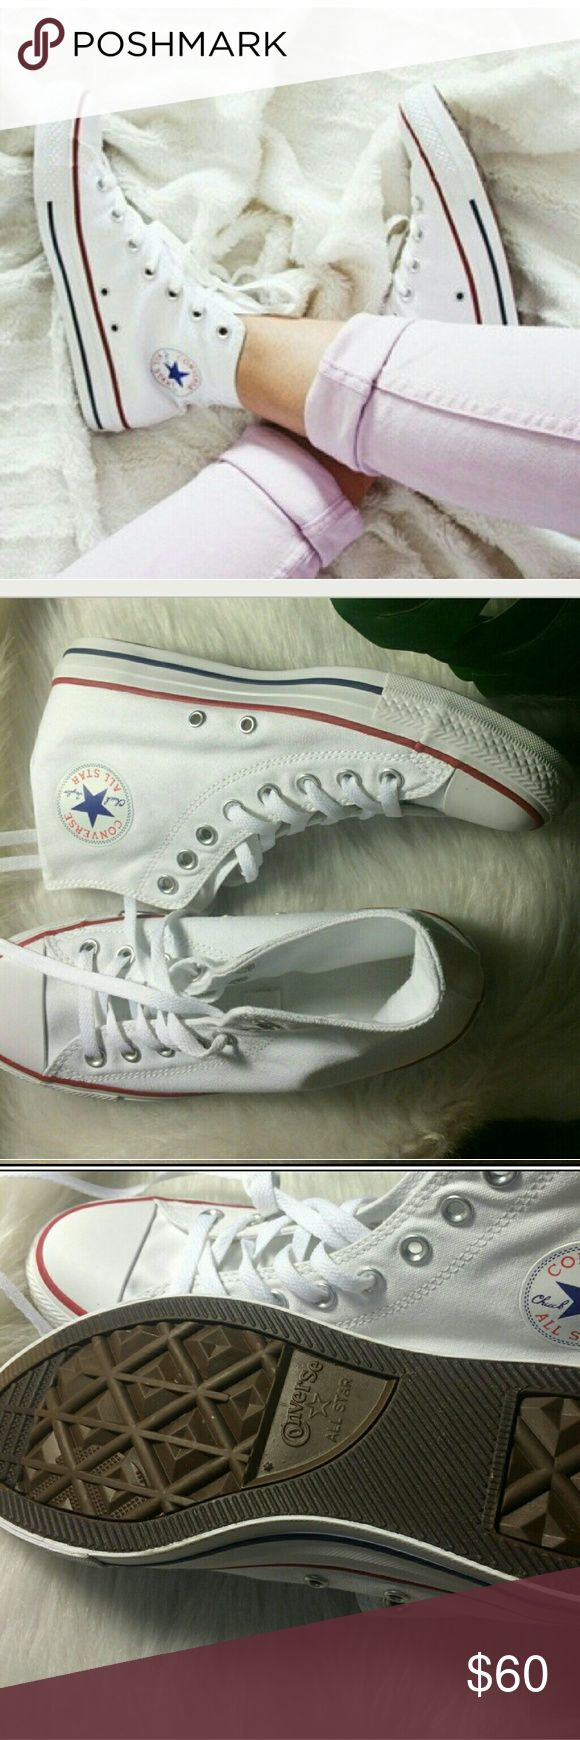 Host Pick Converse Chuck Taylor's High Tops Size 9 Womens No Box EUC Sales Only Converse Shoes Athletic Shoes